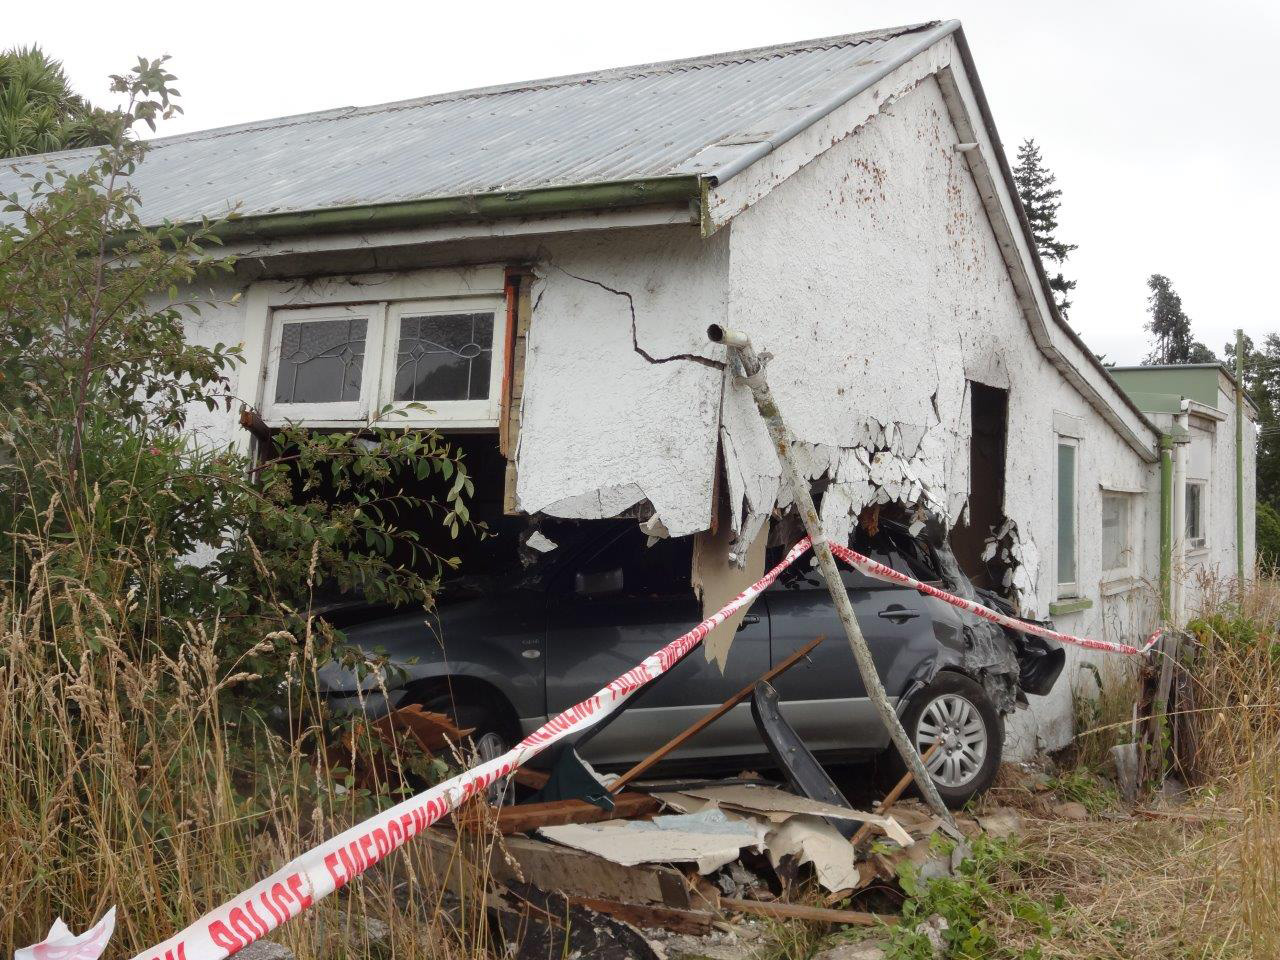 Driver flees after car crashes into house